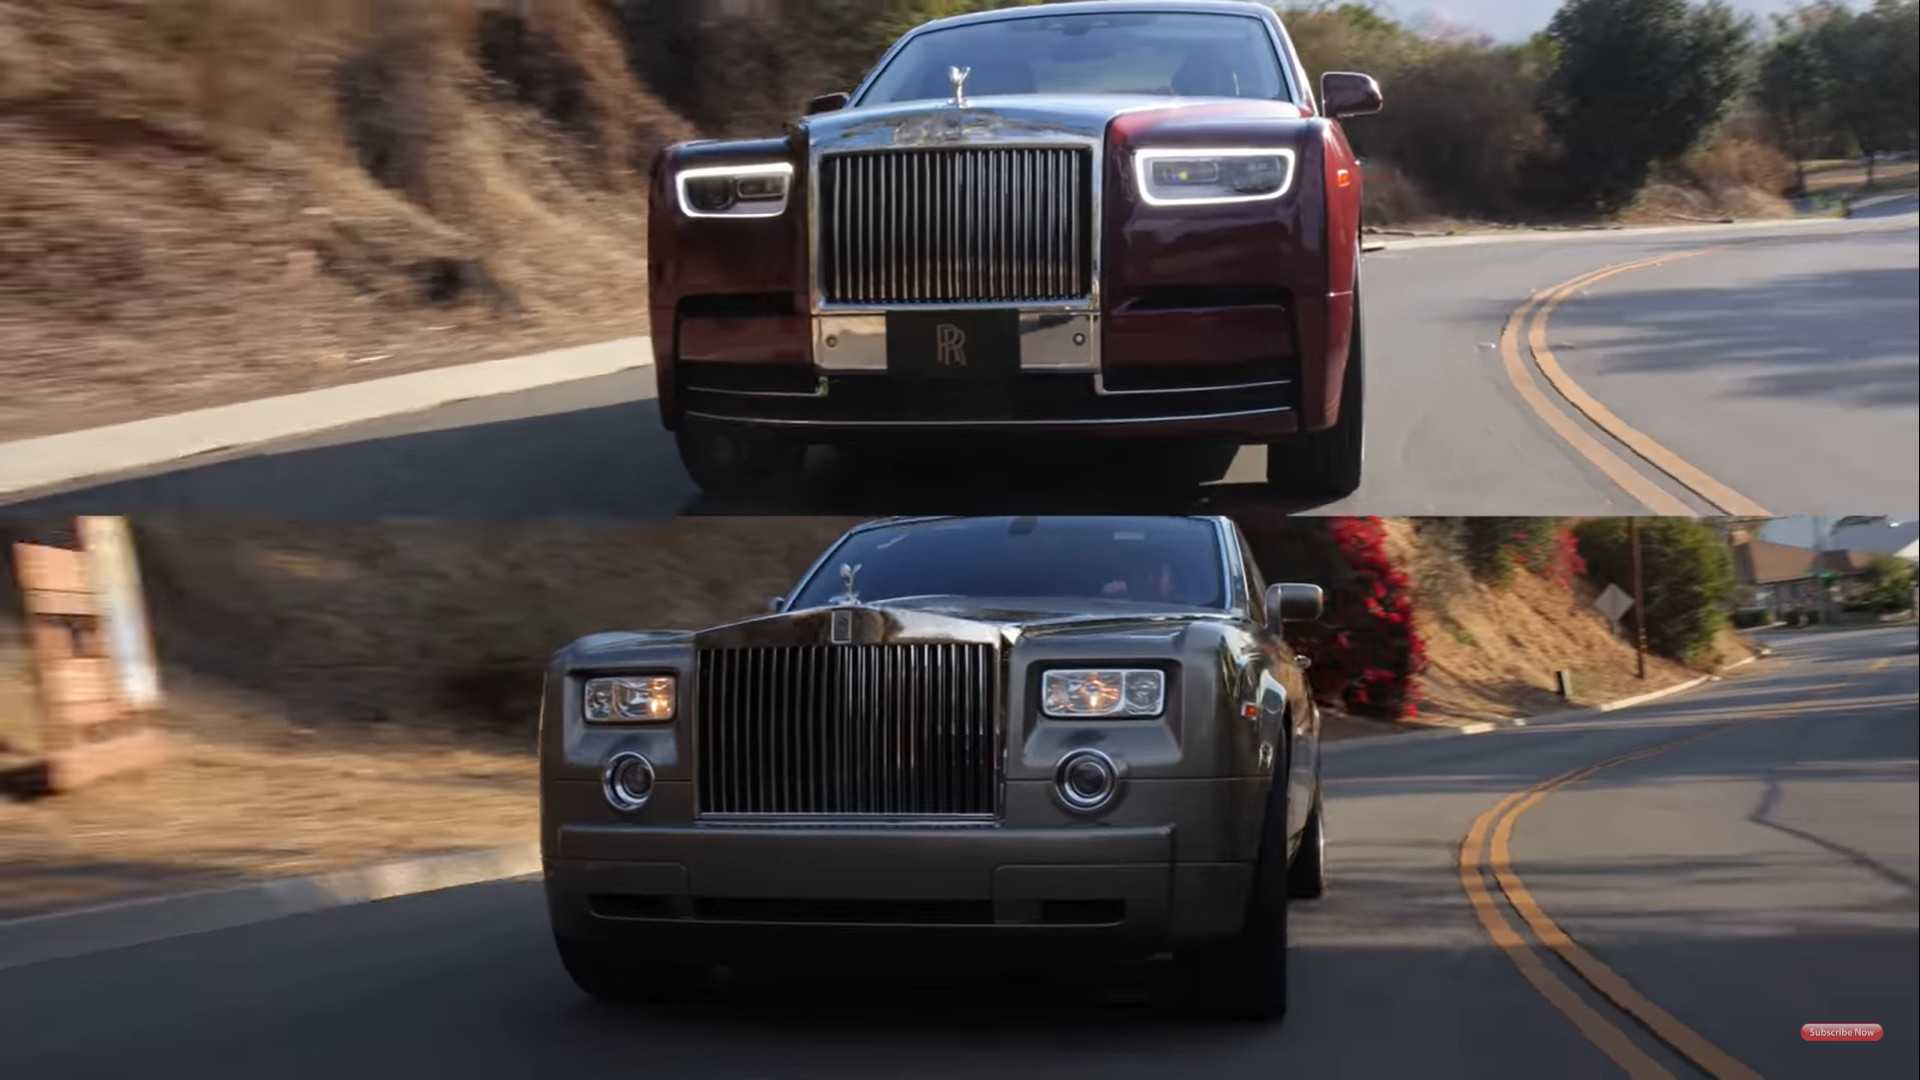 How Does The 2004 Rolls Royce Phantom Hold Up To The 600k New One